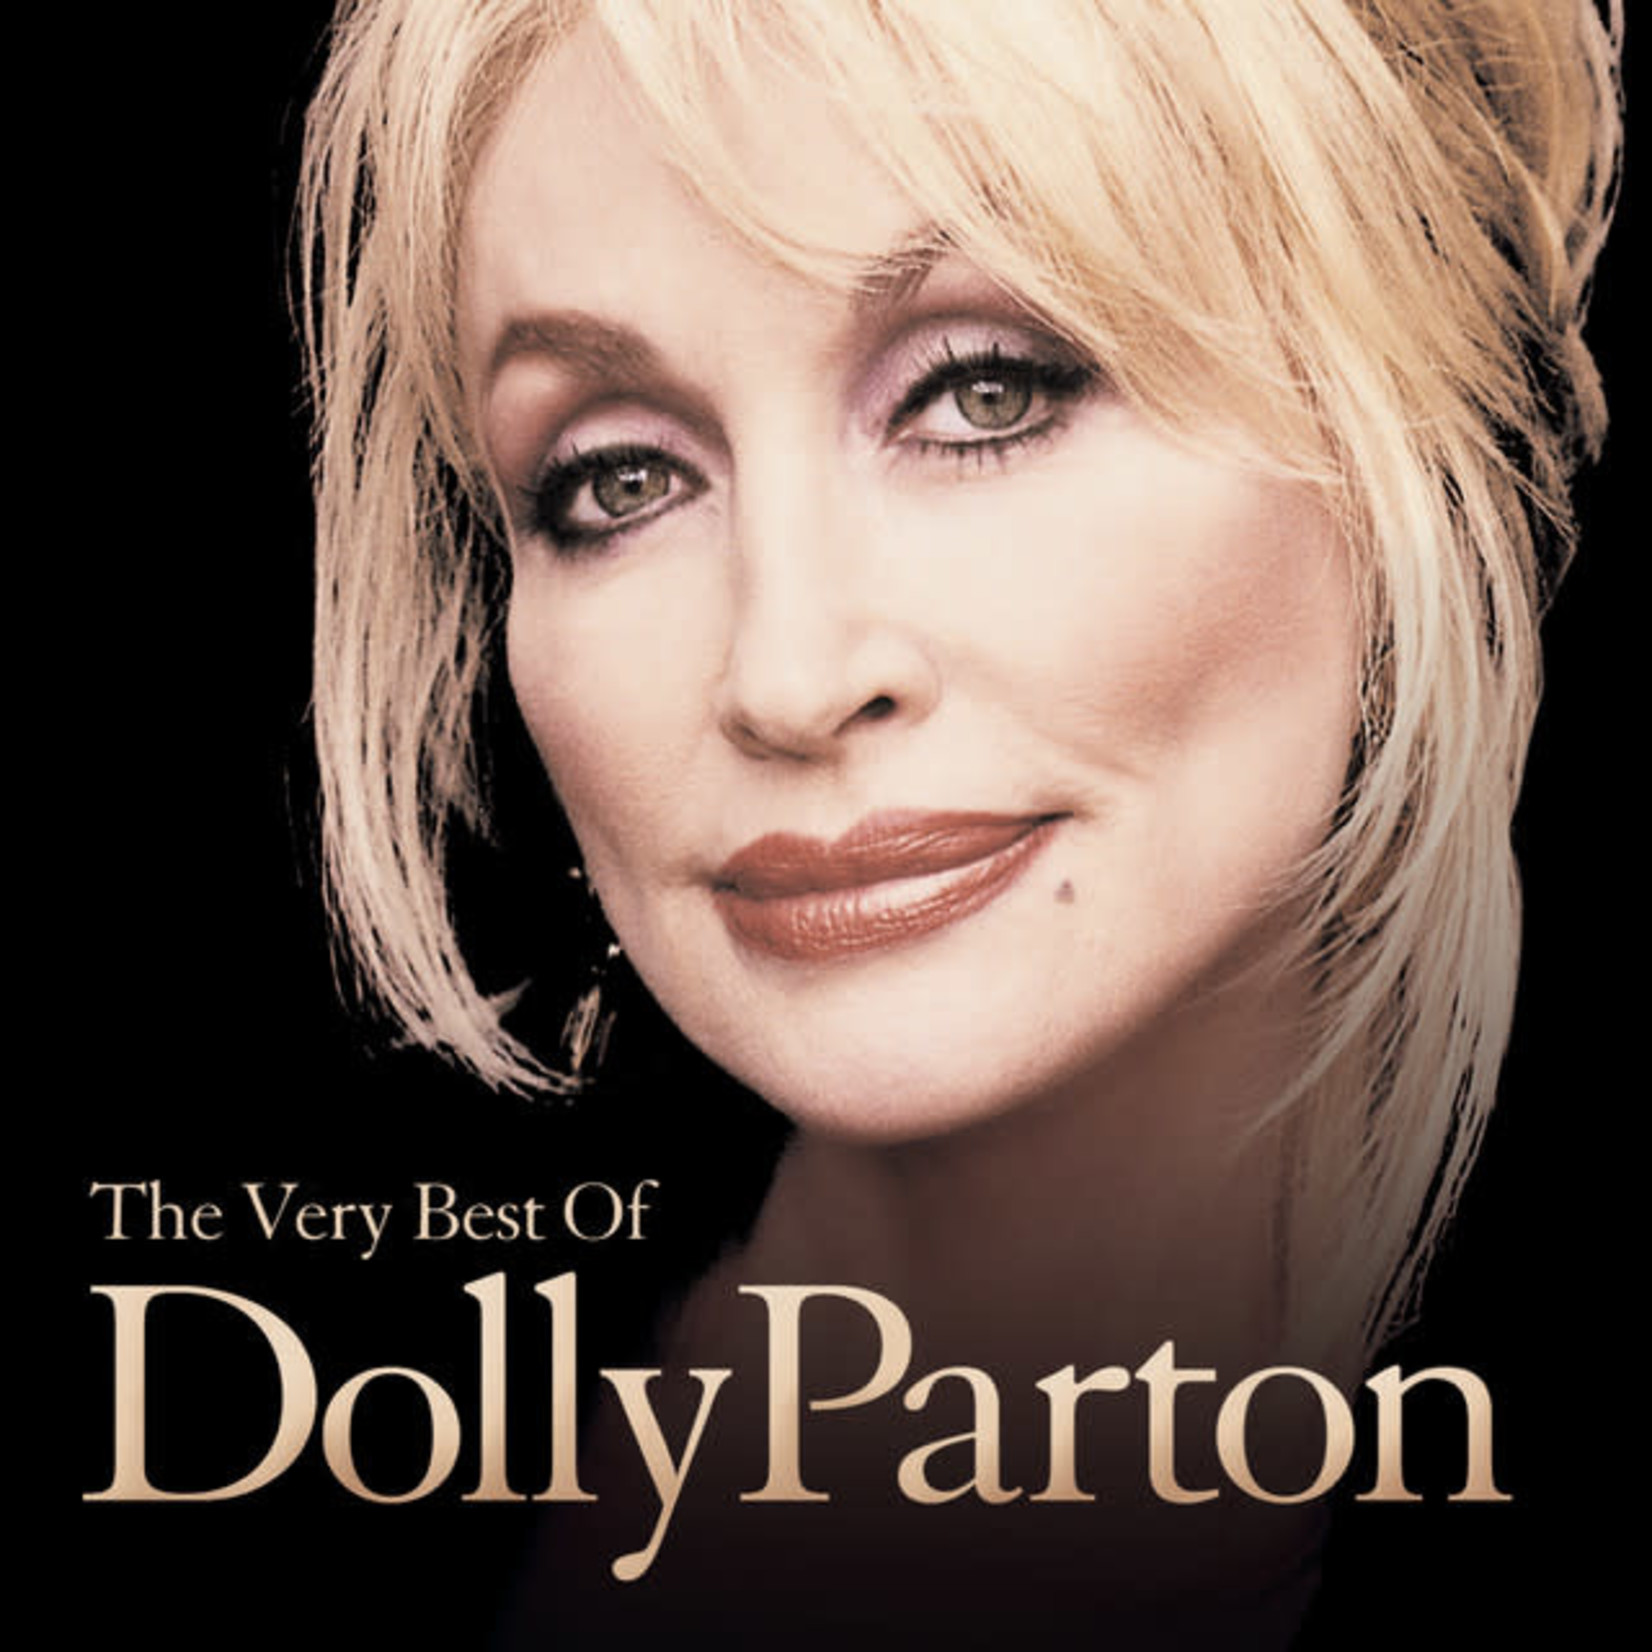 Vinyl Dolly Parton - The Very Best Of